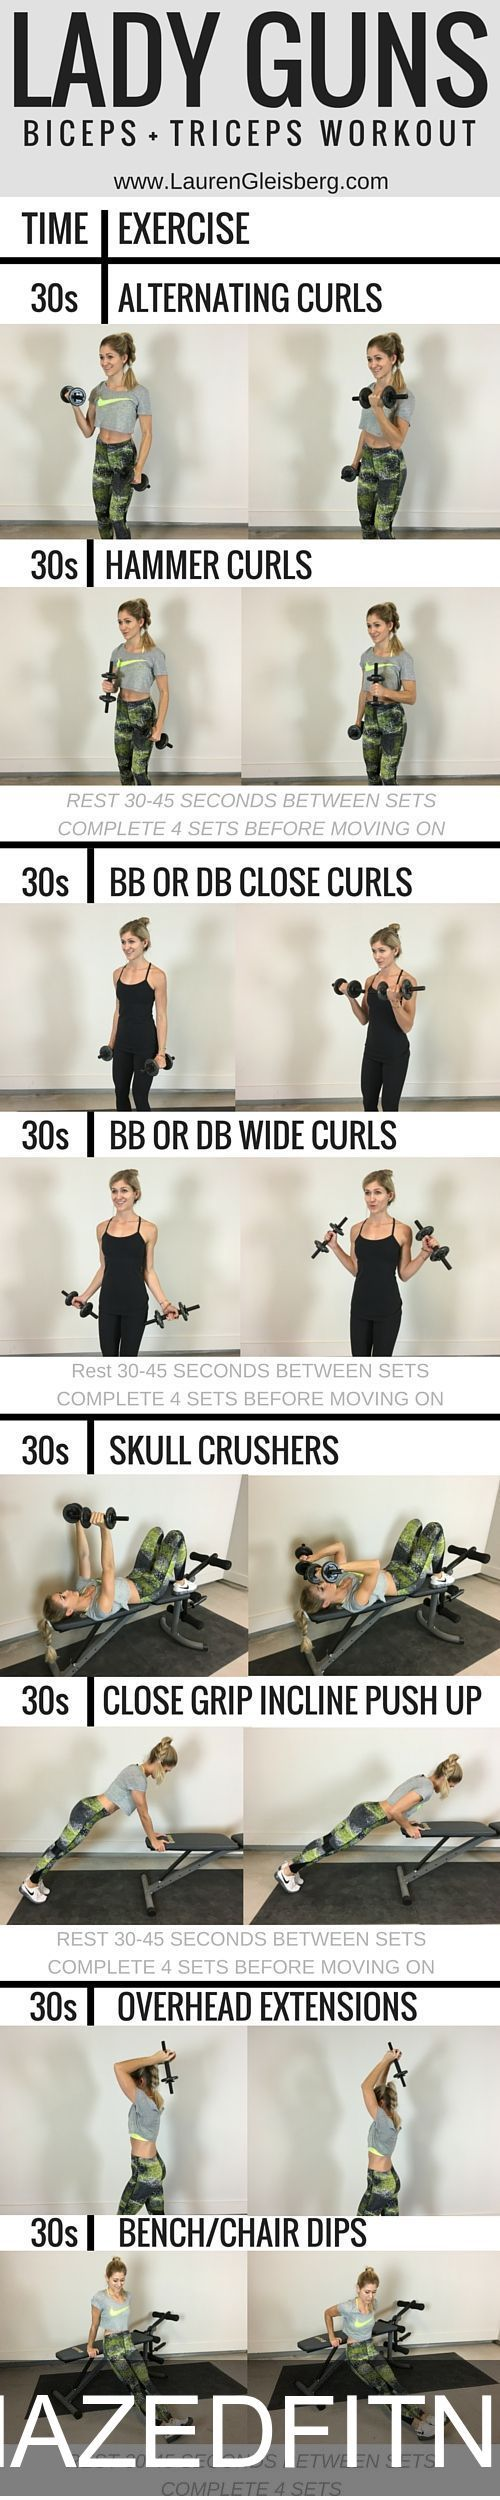 23 Fat Burning Bikini Arm Workouts That Will Shape Your Arms